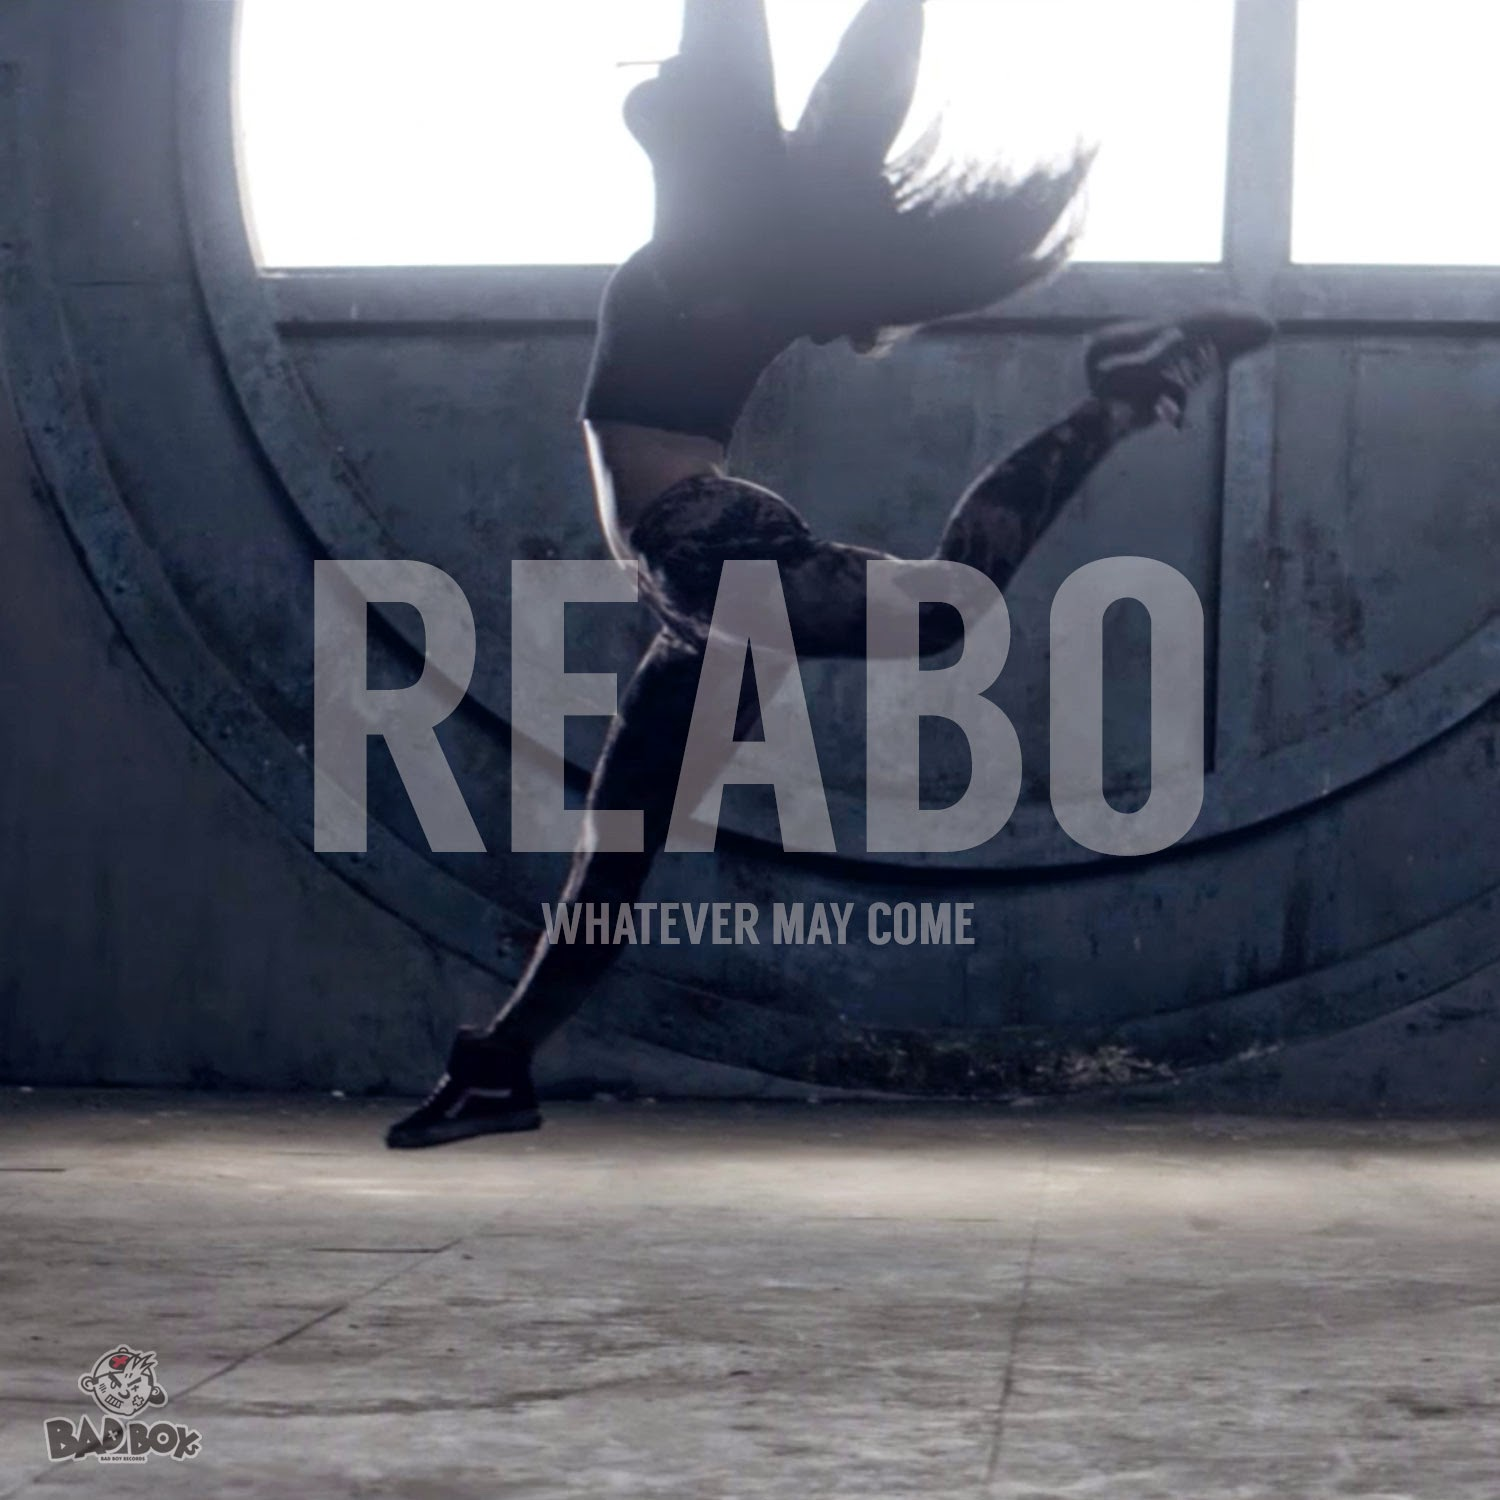 http://www.d4am.net/2014/05/reabo-whatever-may-come.html